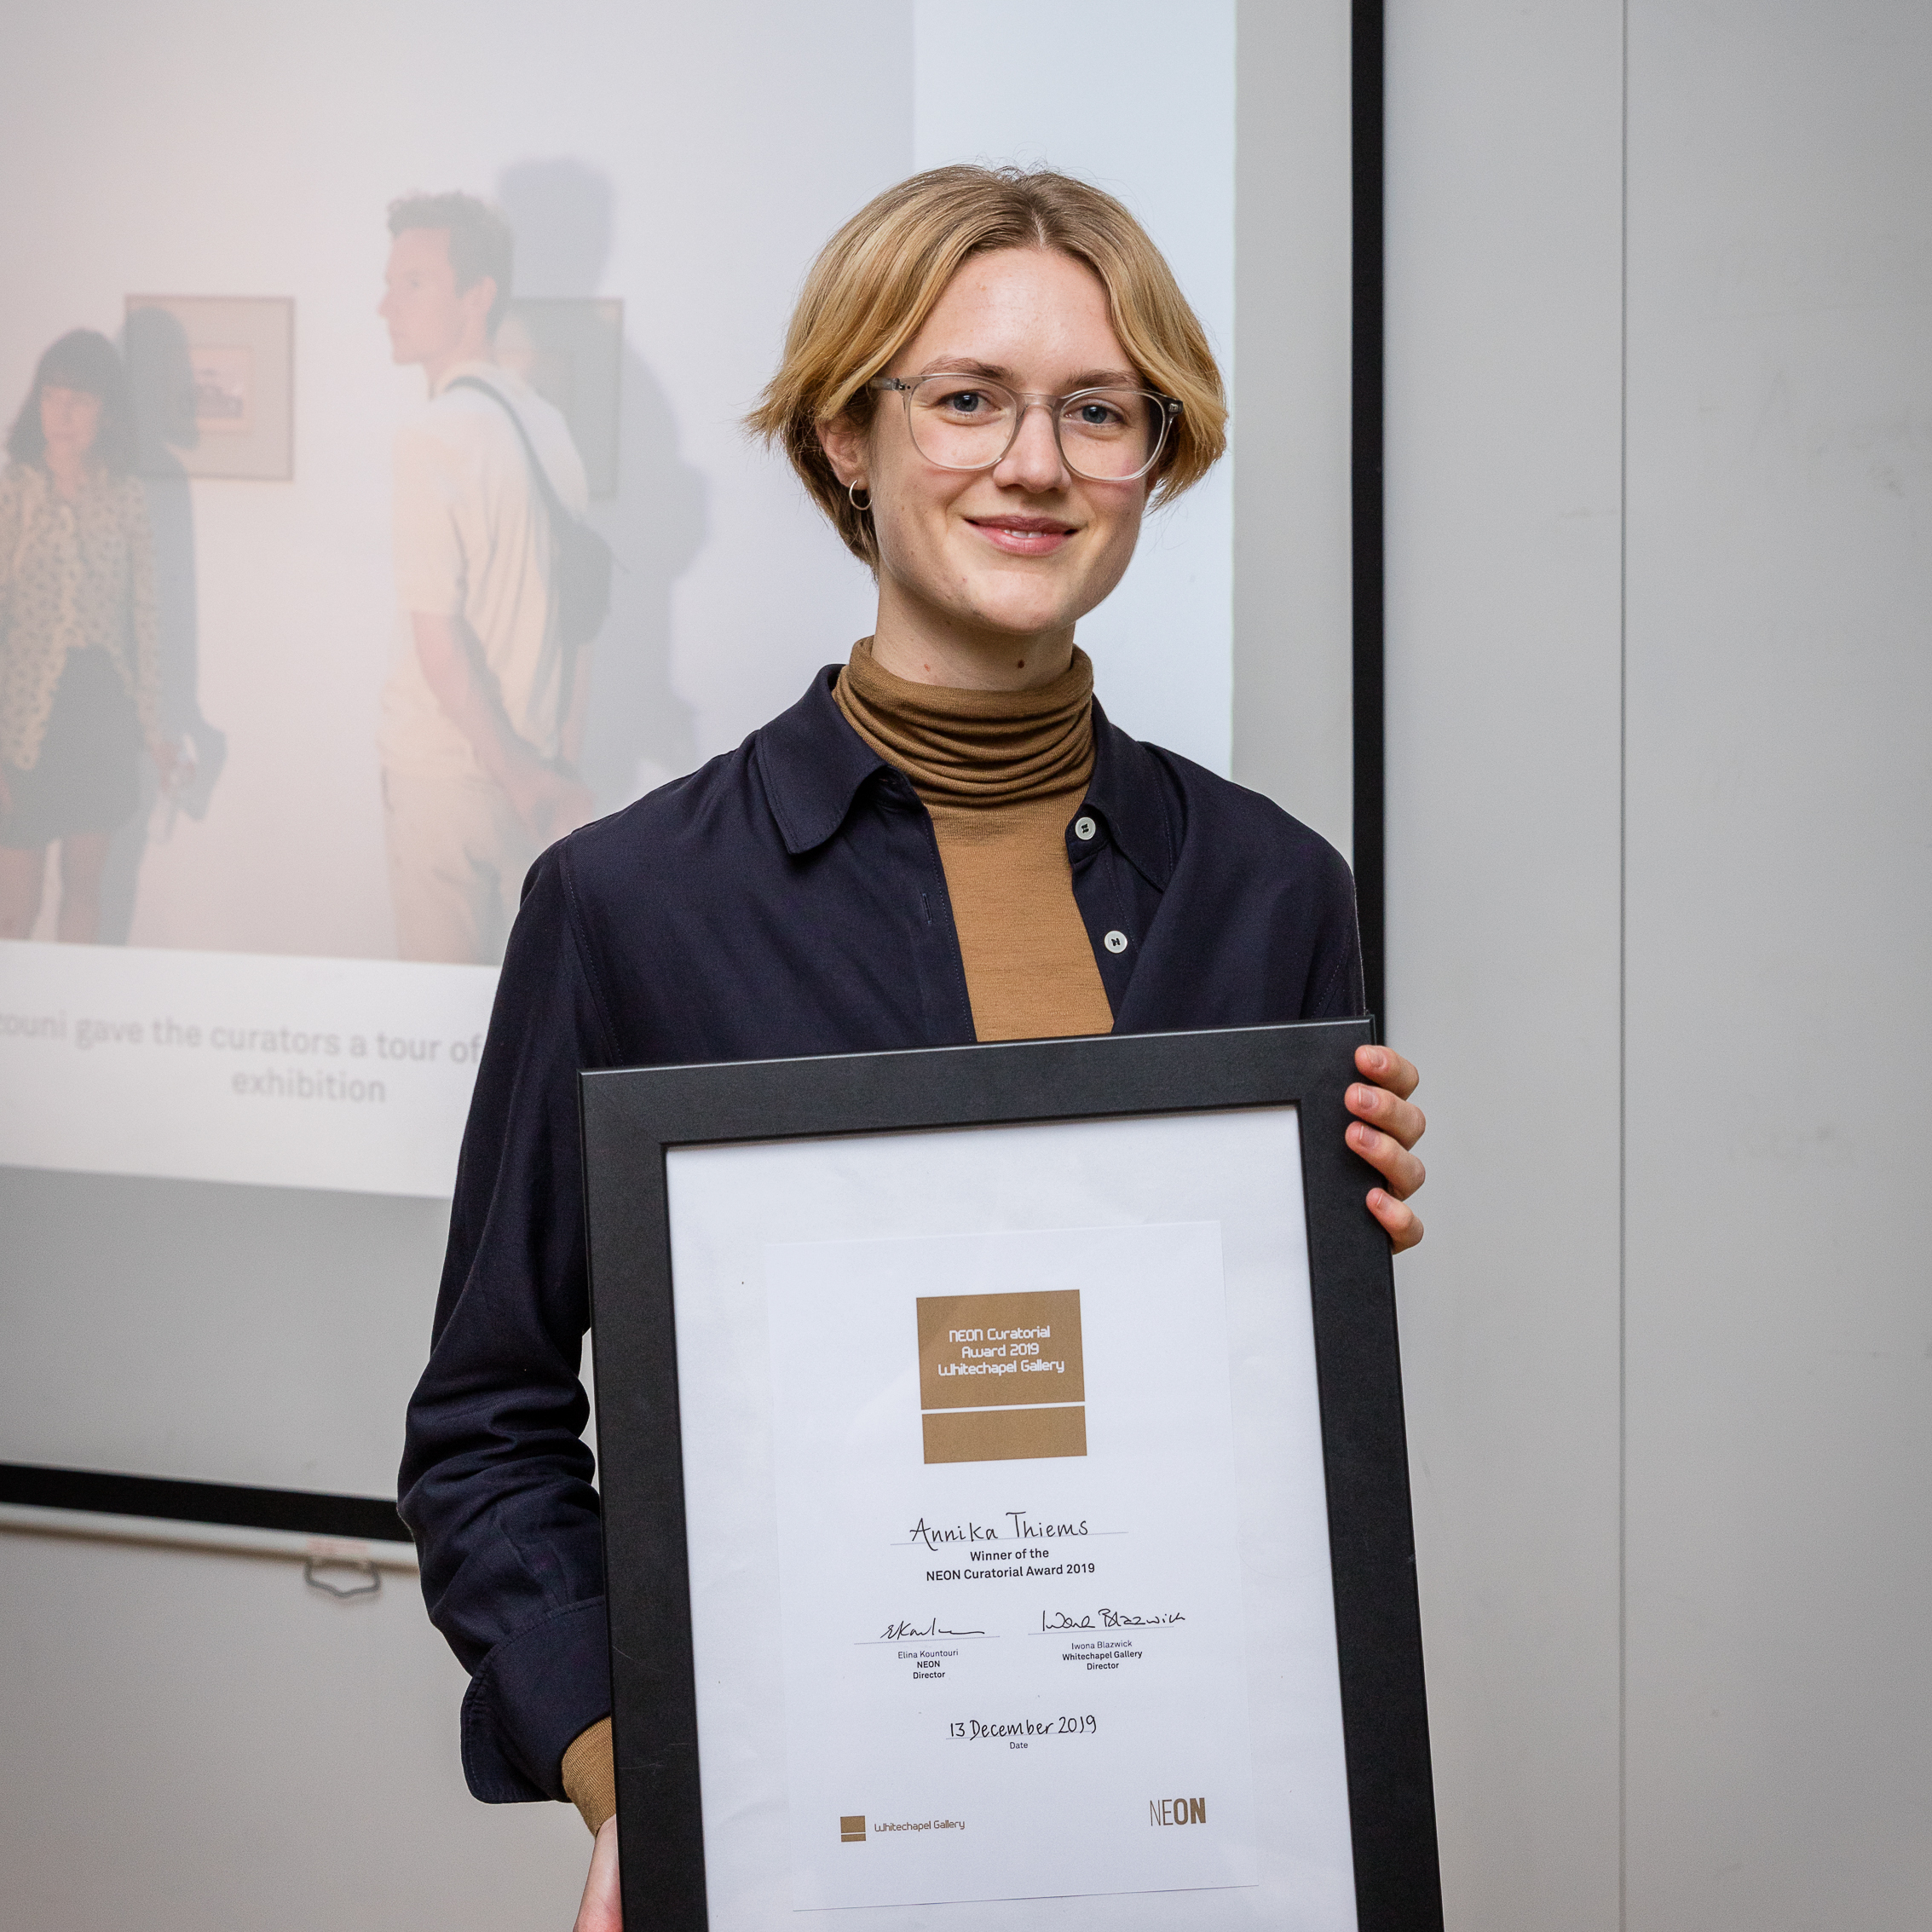 Annika Thiems, winner of the 2019 NEON Curatorial Award. Photo: Dan Weill.